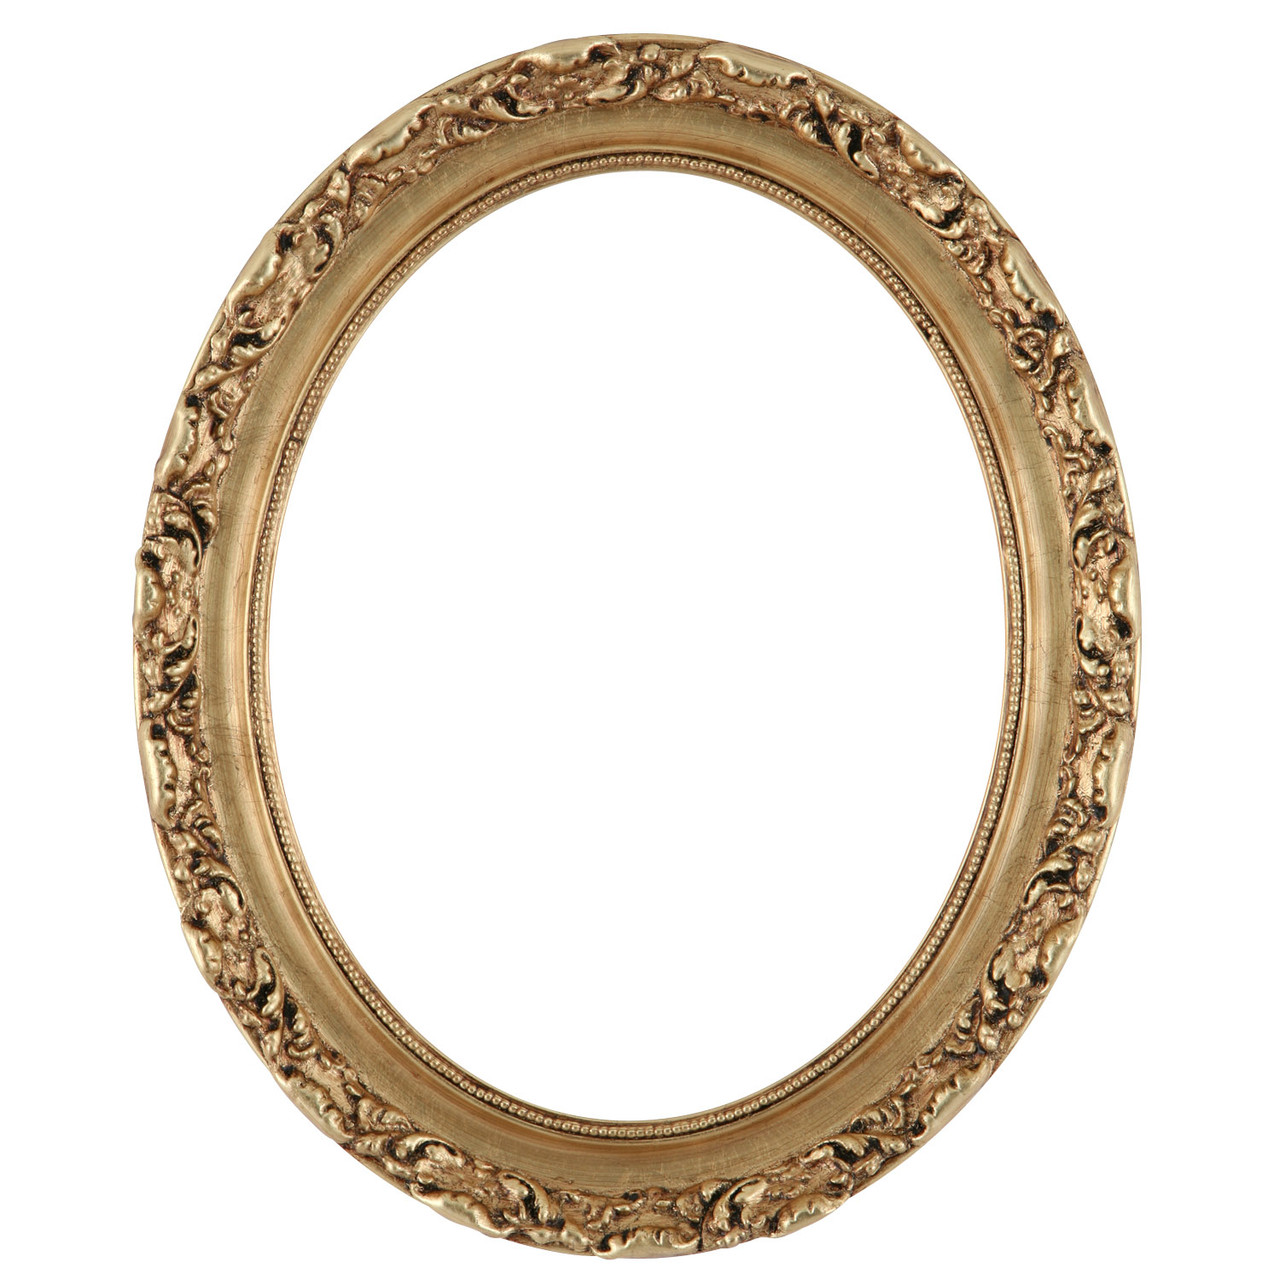 cc2c76a2d8d6 Oval Frame in Gold Leaf Finish